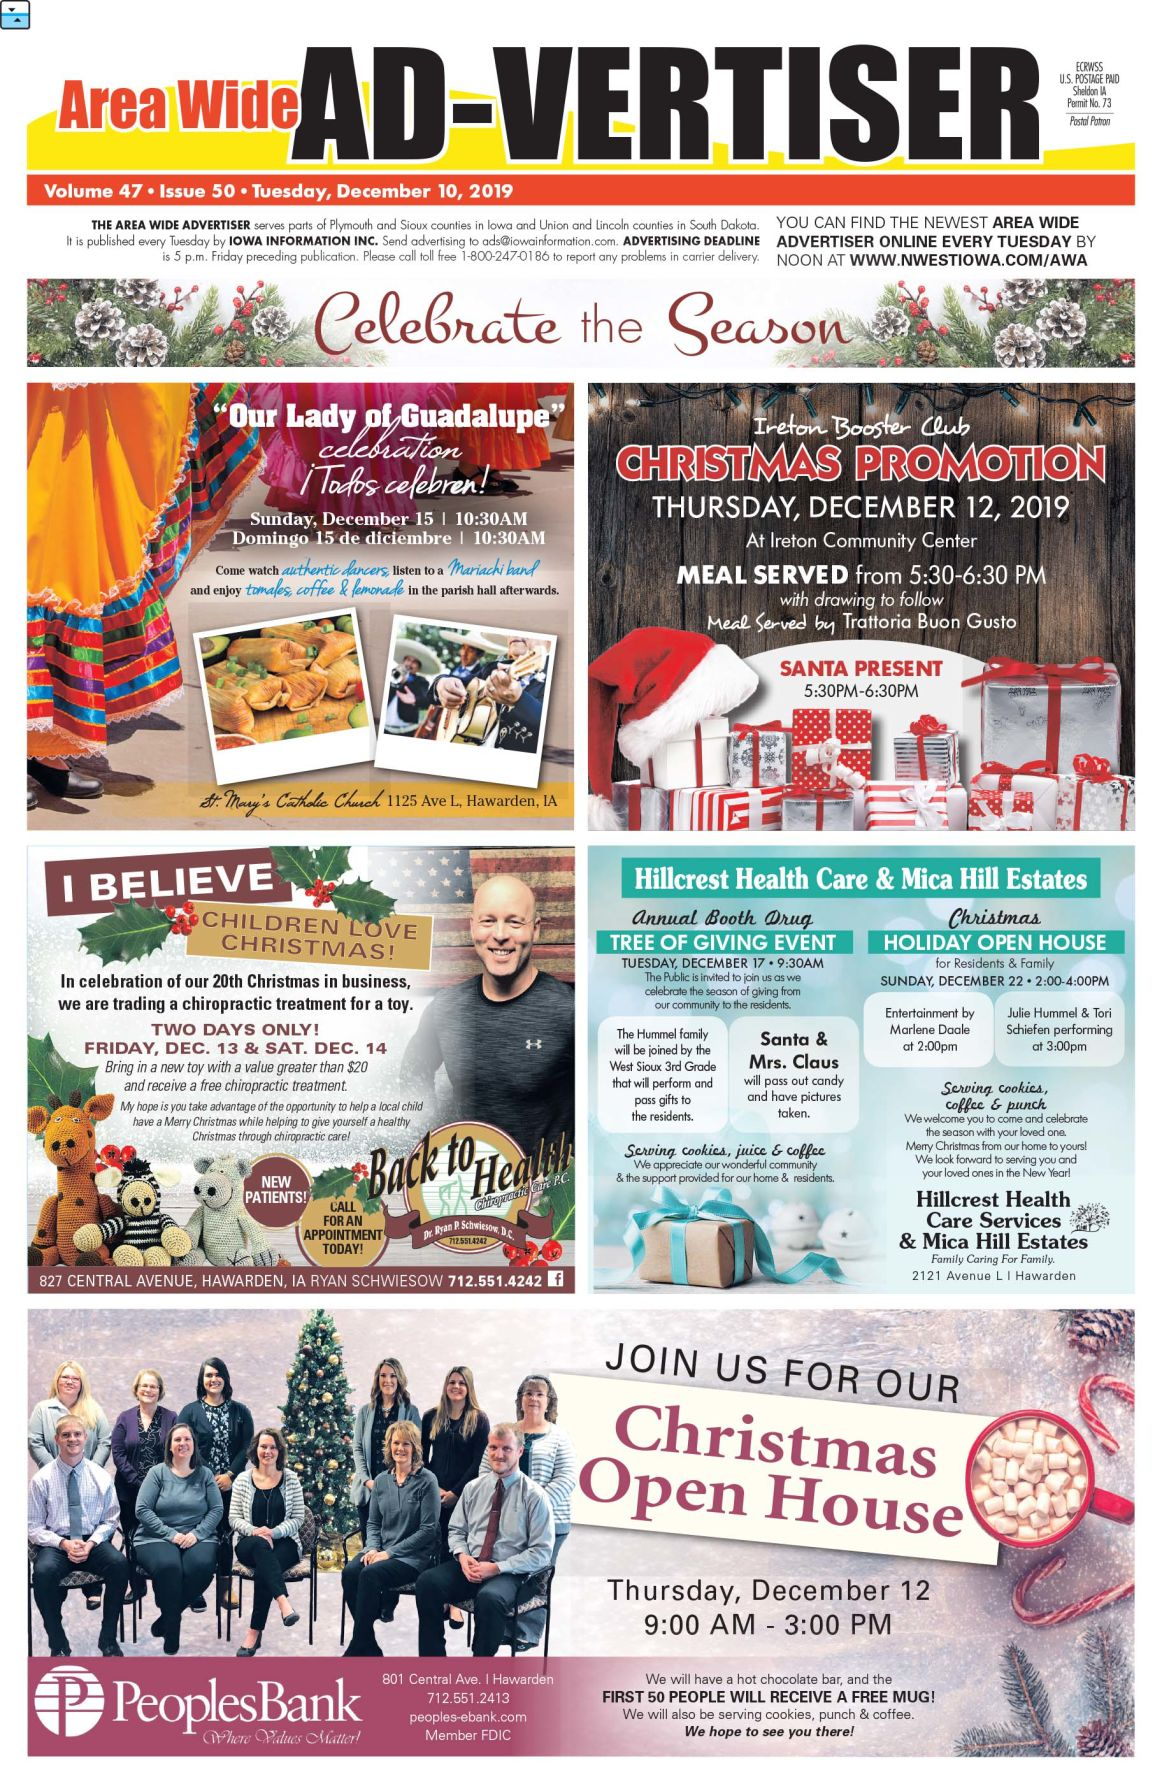 Area Wide Ad-vertiser: December 10, 2019